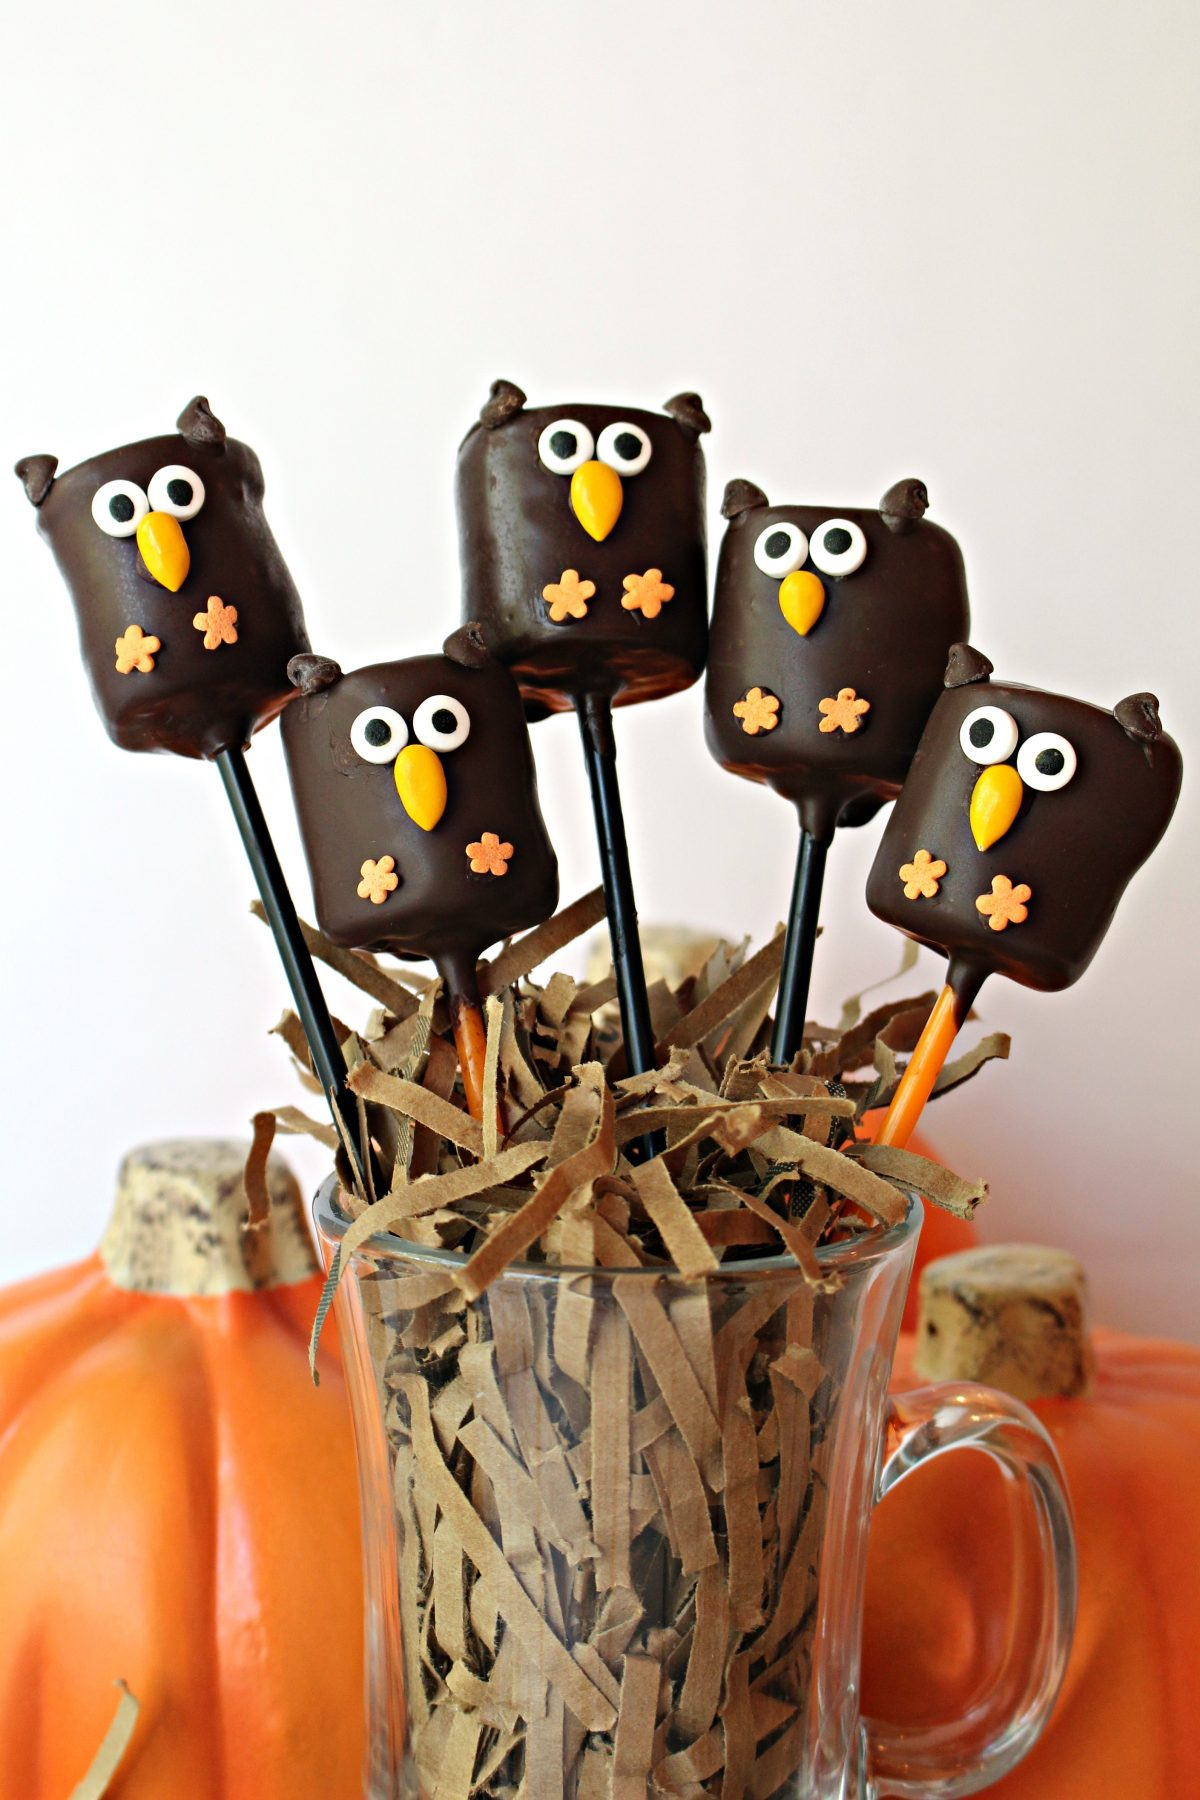 Five owl marshmallow pops on sticks in a cup filled with shredded paper like a nest.